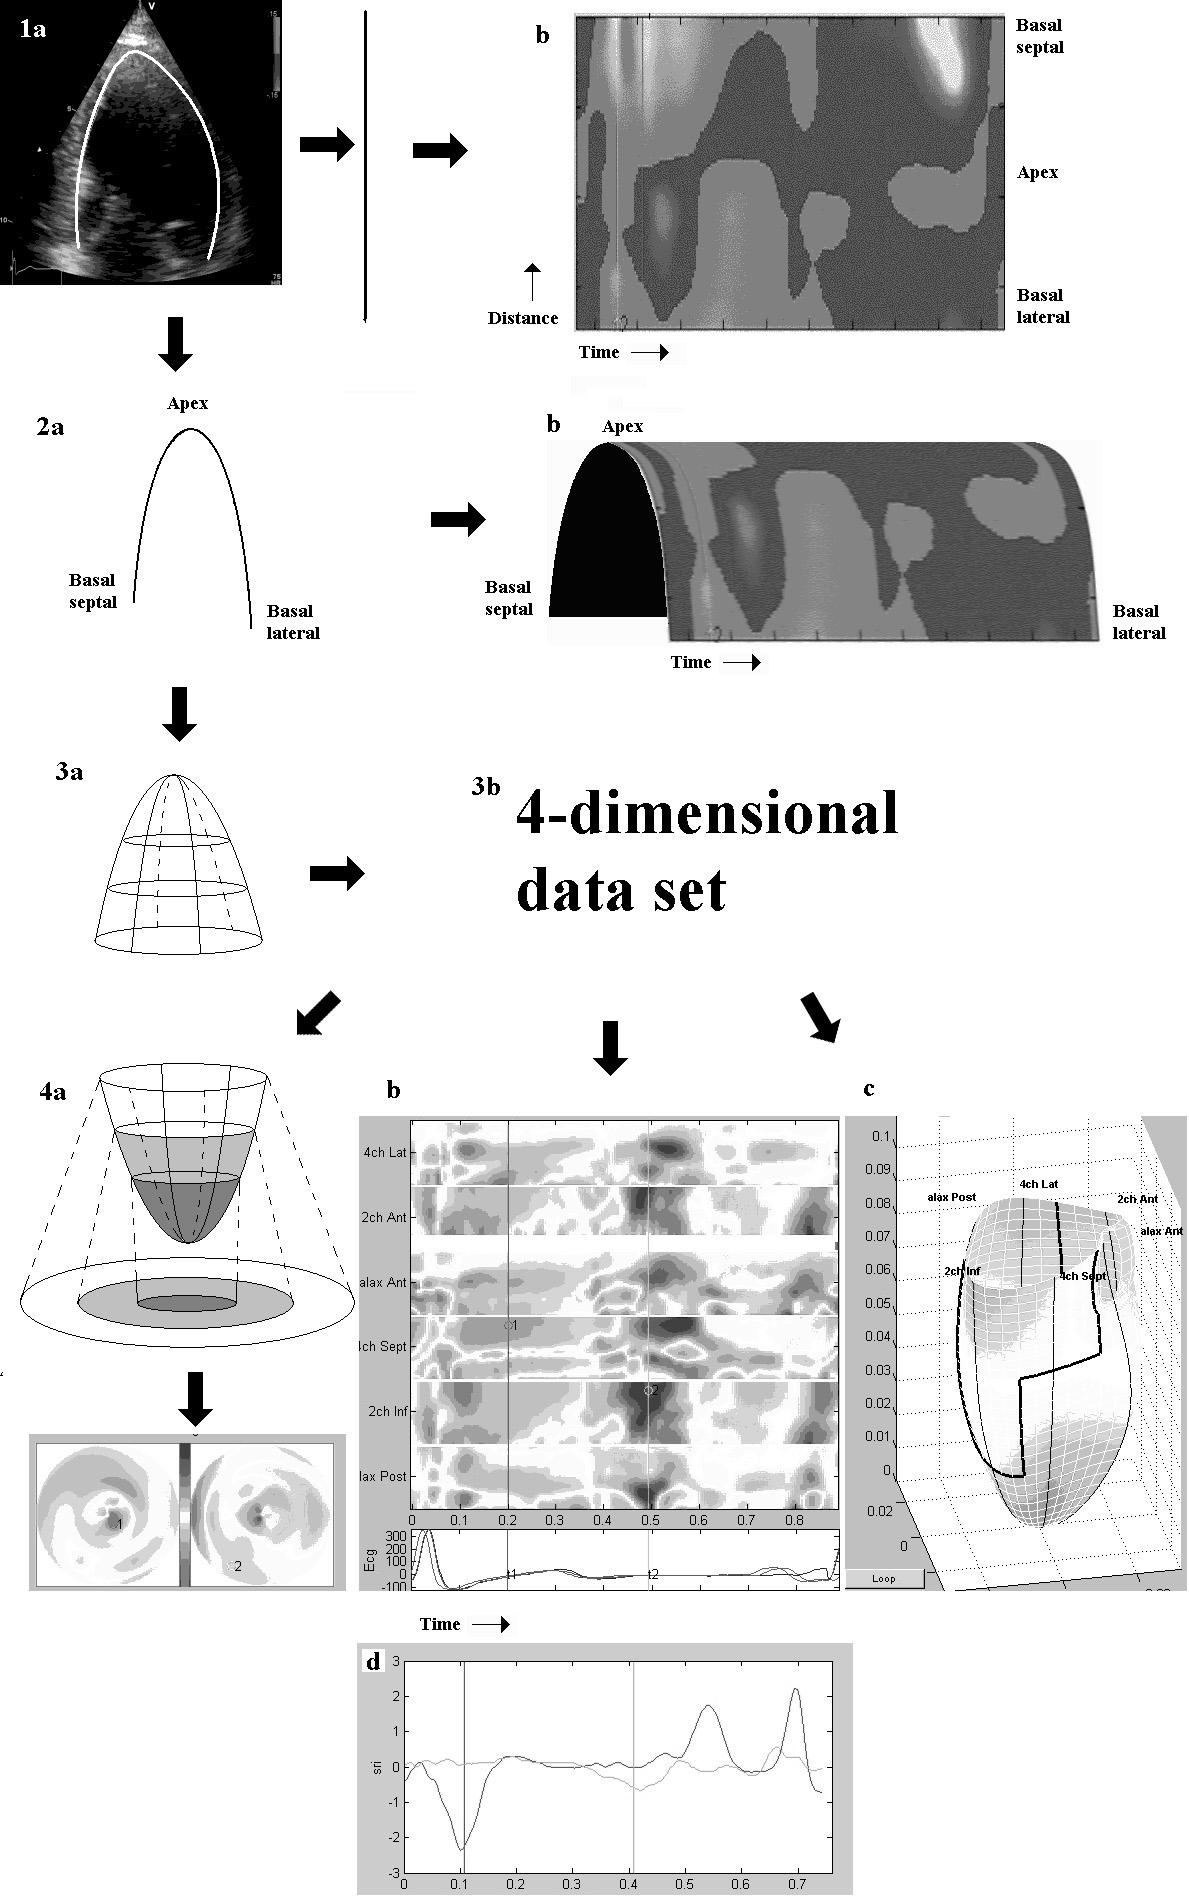 http://static-content.springer.com/image/art%3A10.1186%2F1476-7120-1-11/MediaObjects/12947_2003_Article_11_Fig2_HTML.jpg